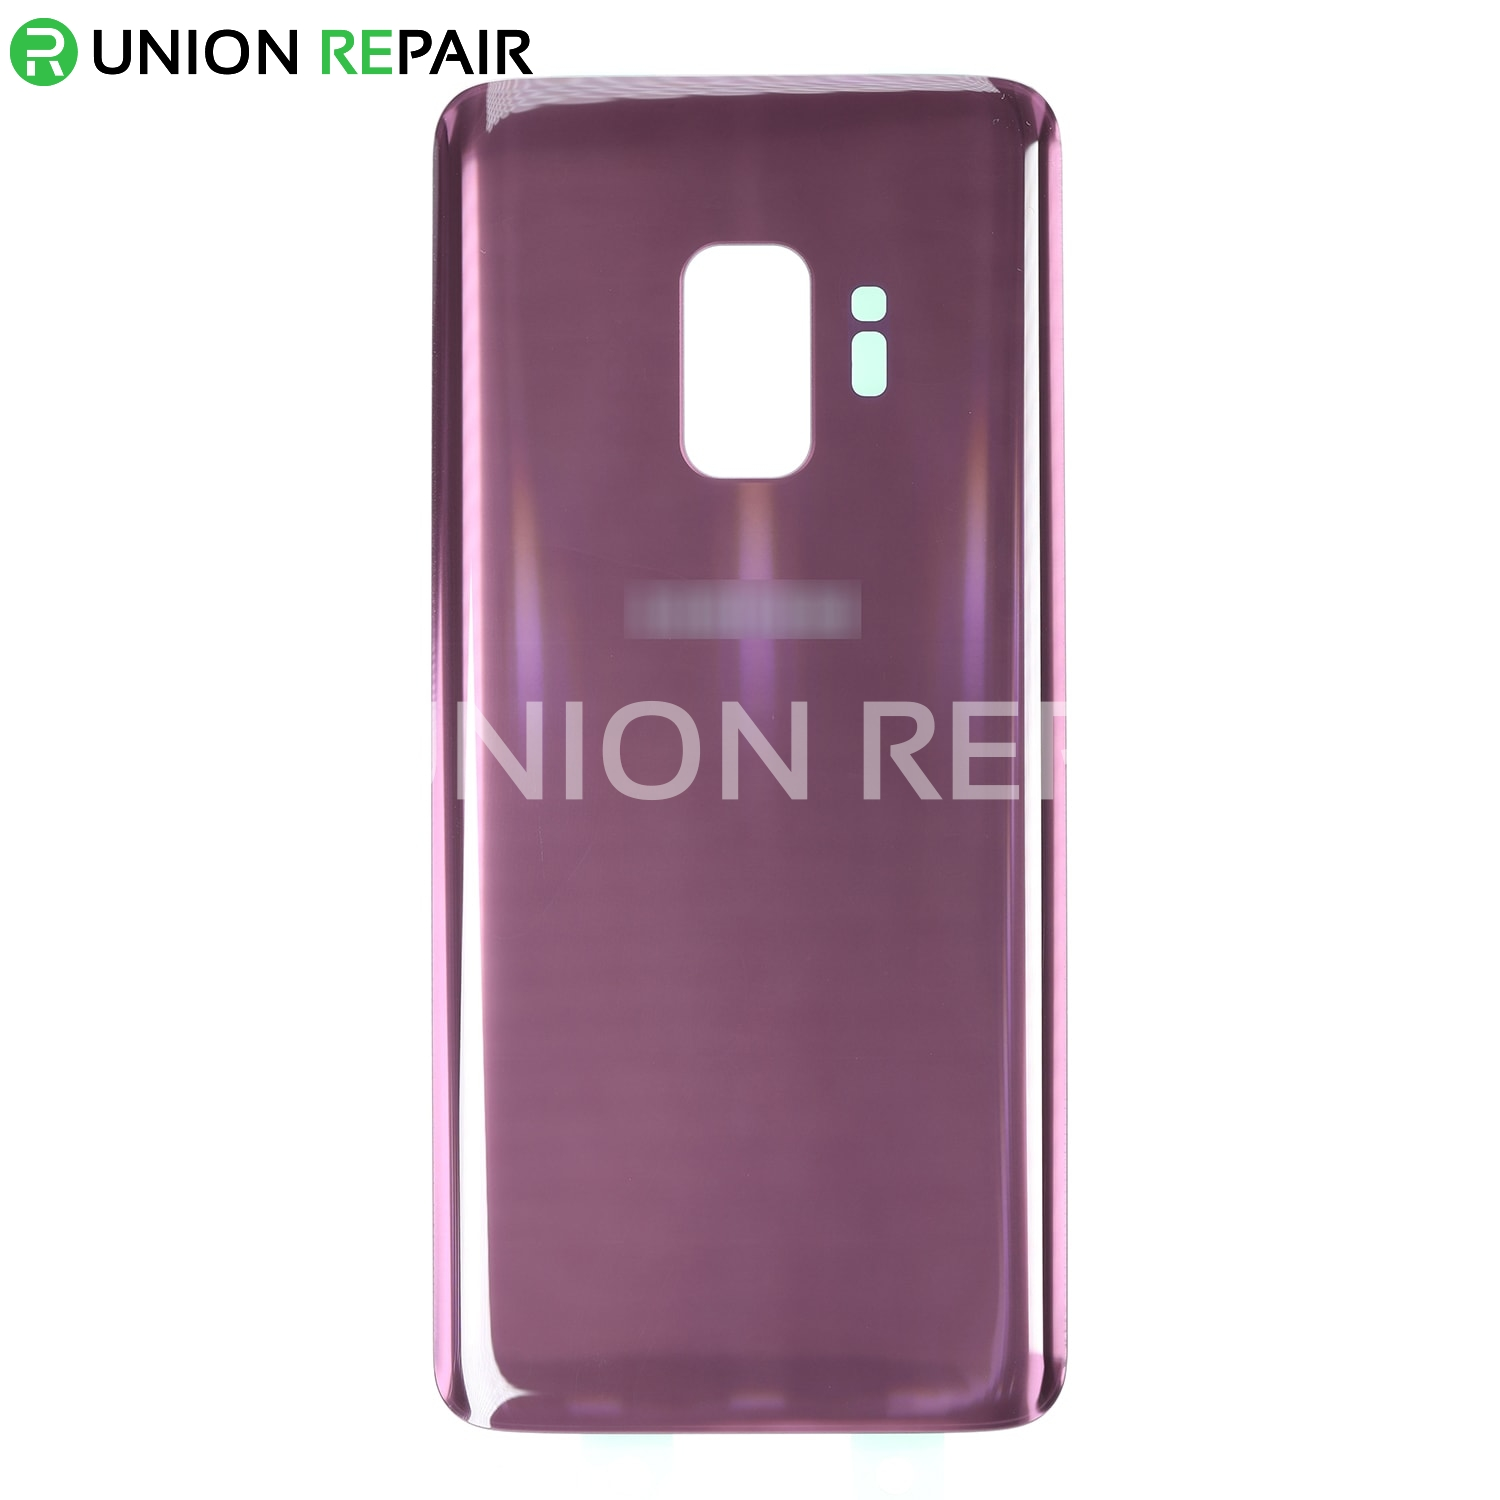 sports shoes 33894 e92f5 Replacement for Samsung Galaxy S9 SM-G960 Back Cover - Lilac Purple